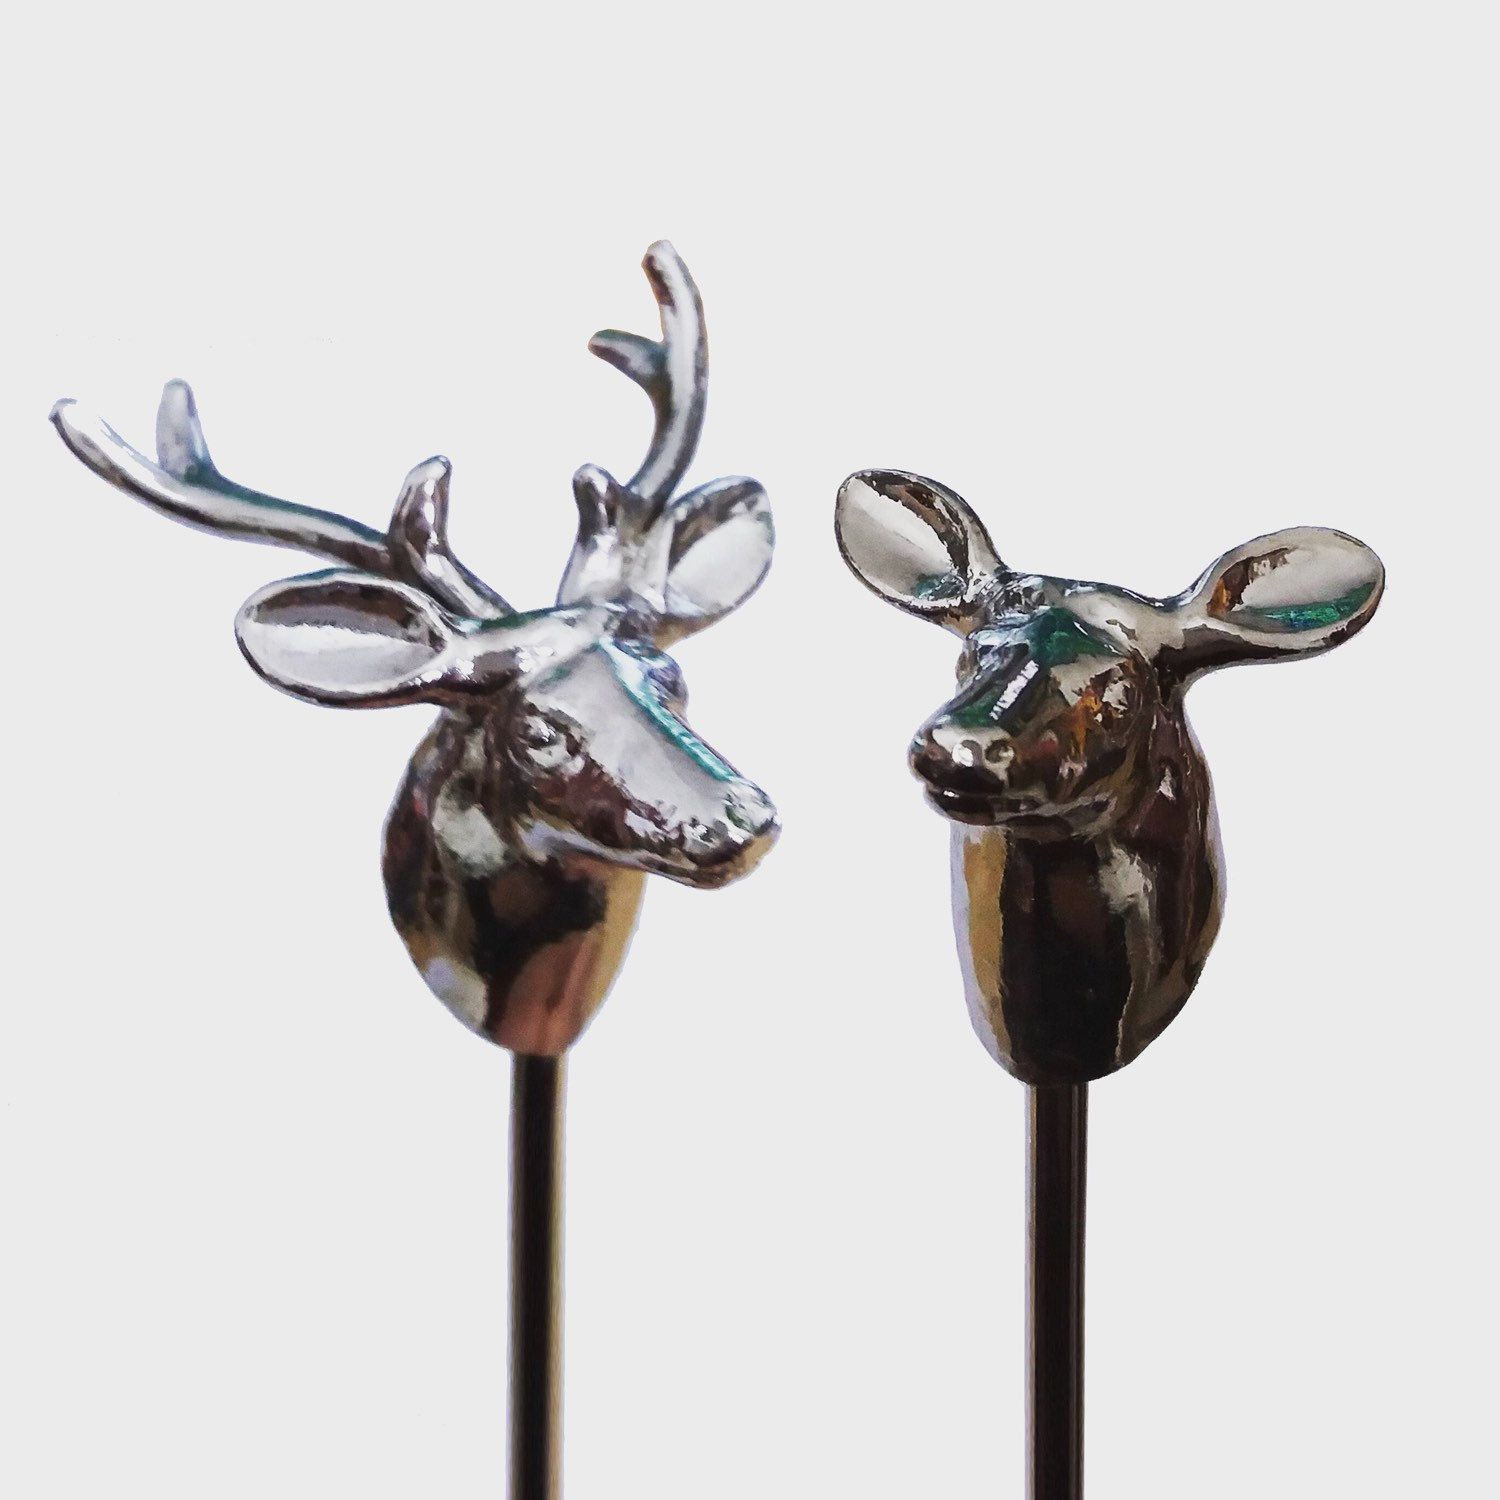 New Doe Stirrer Designs And A Buck Original Hip